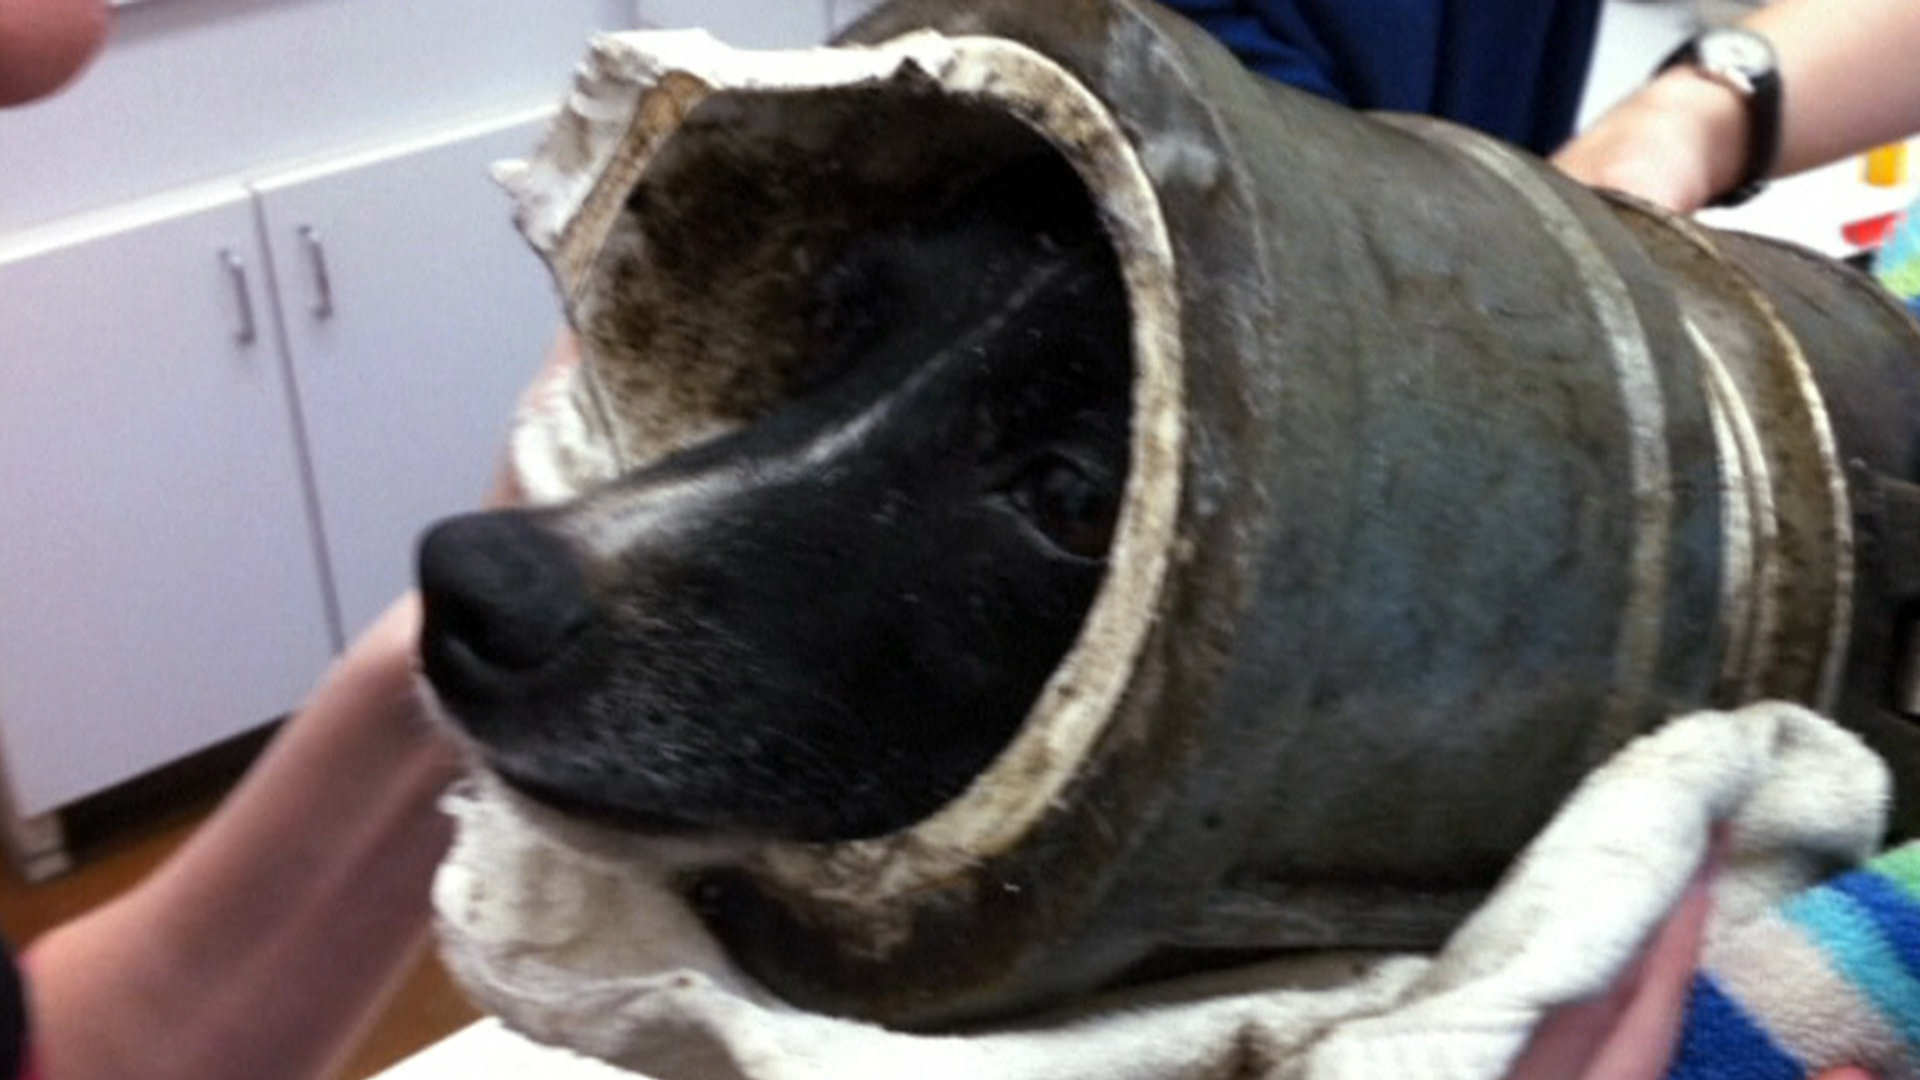 Dog Chases Squirrel Gets Head Stuck In Pipe